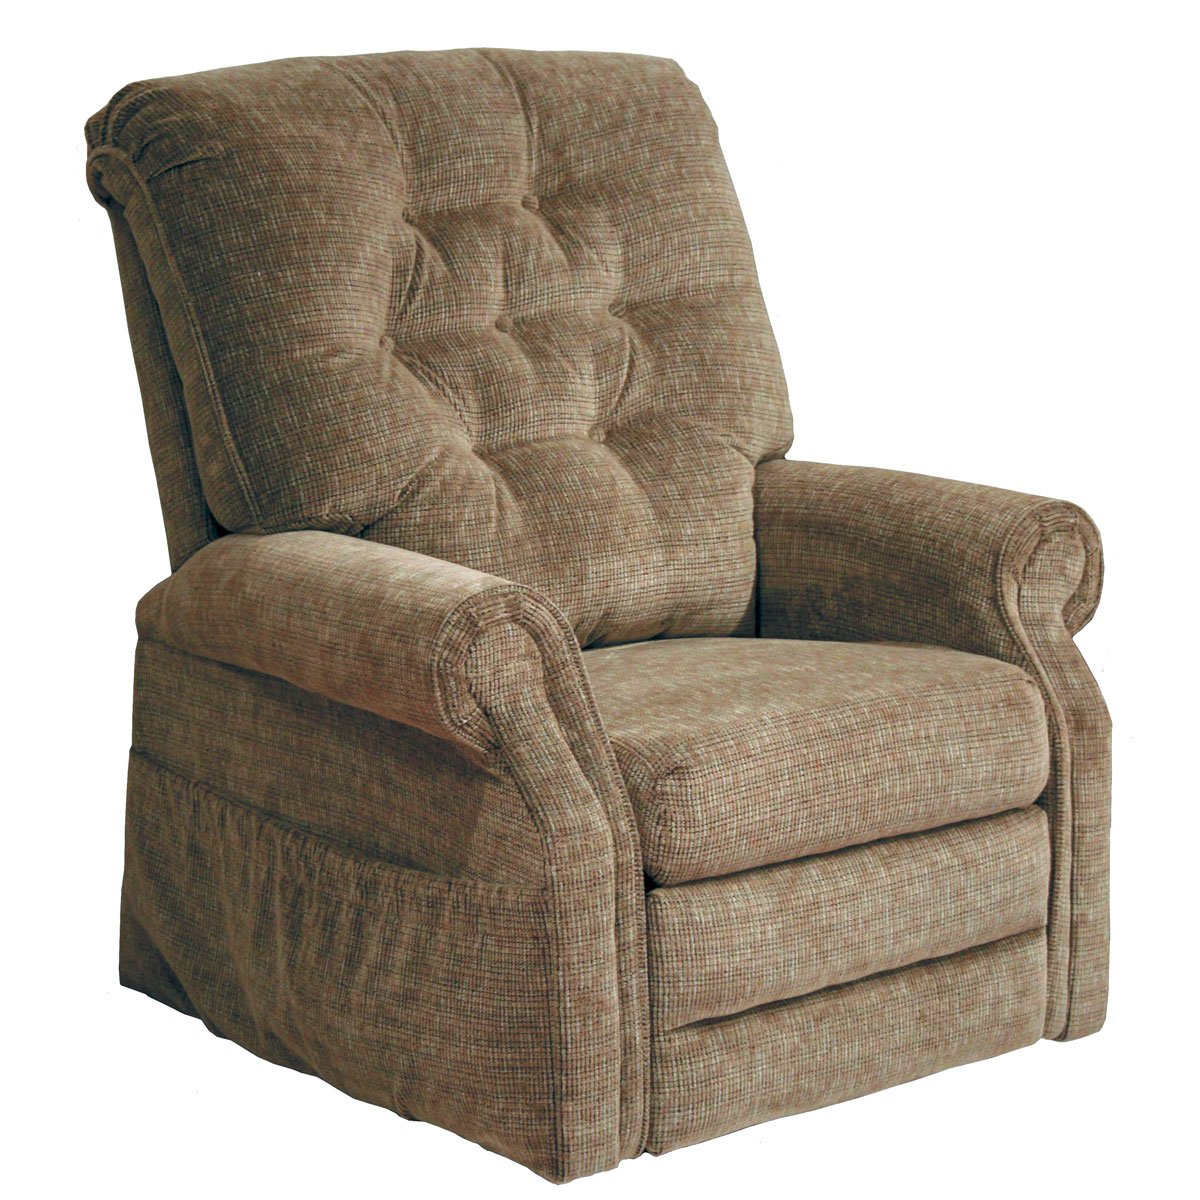 Most Comfortable Recliners And Buyers Guide Your Comfort